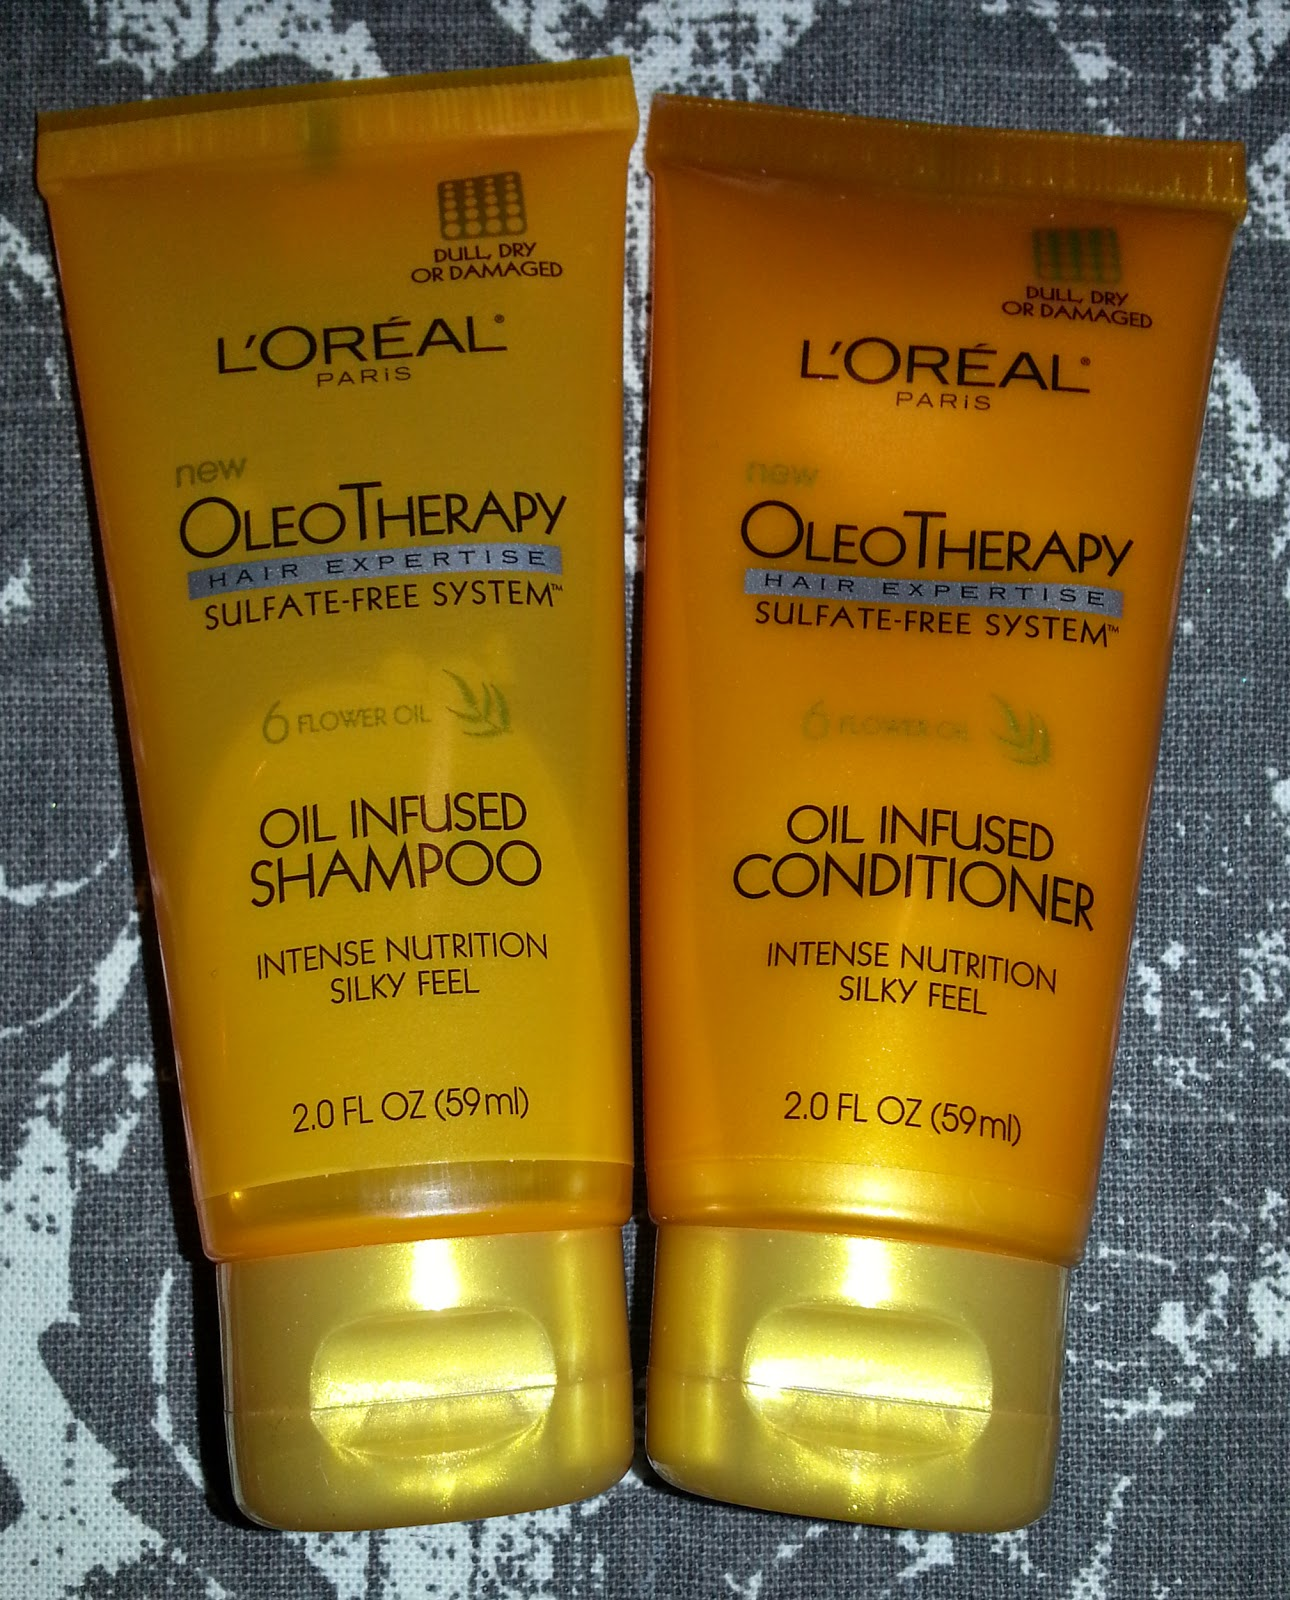 L'Oreal Oleo Therapy Oil Infused Shampoo and Conditioner